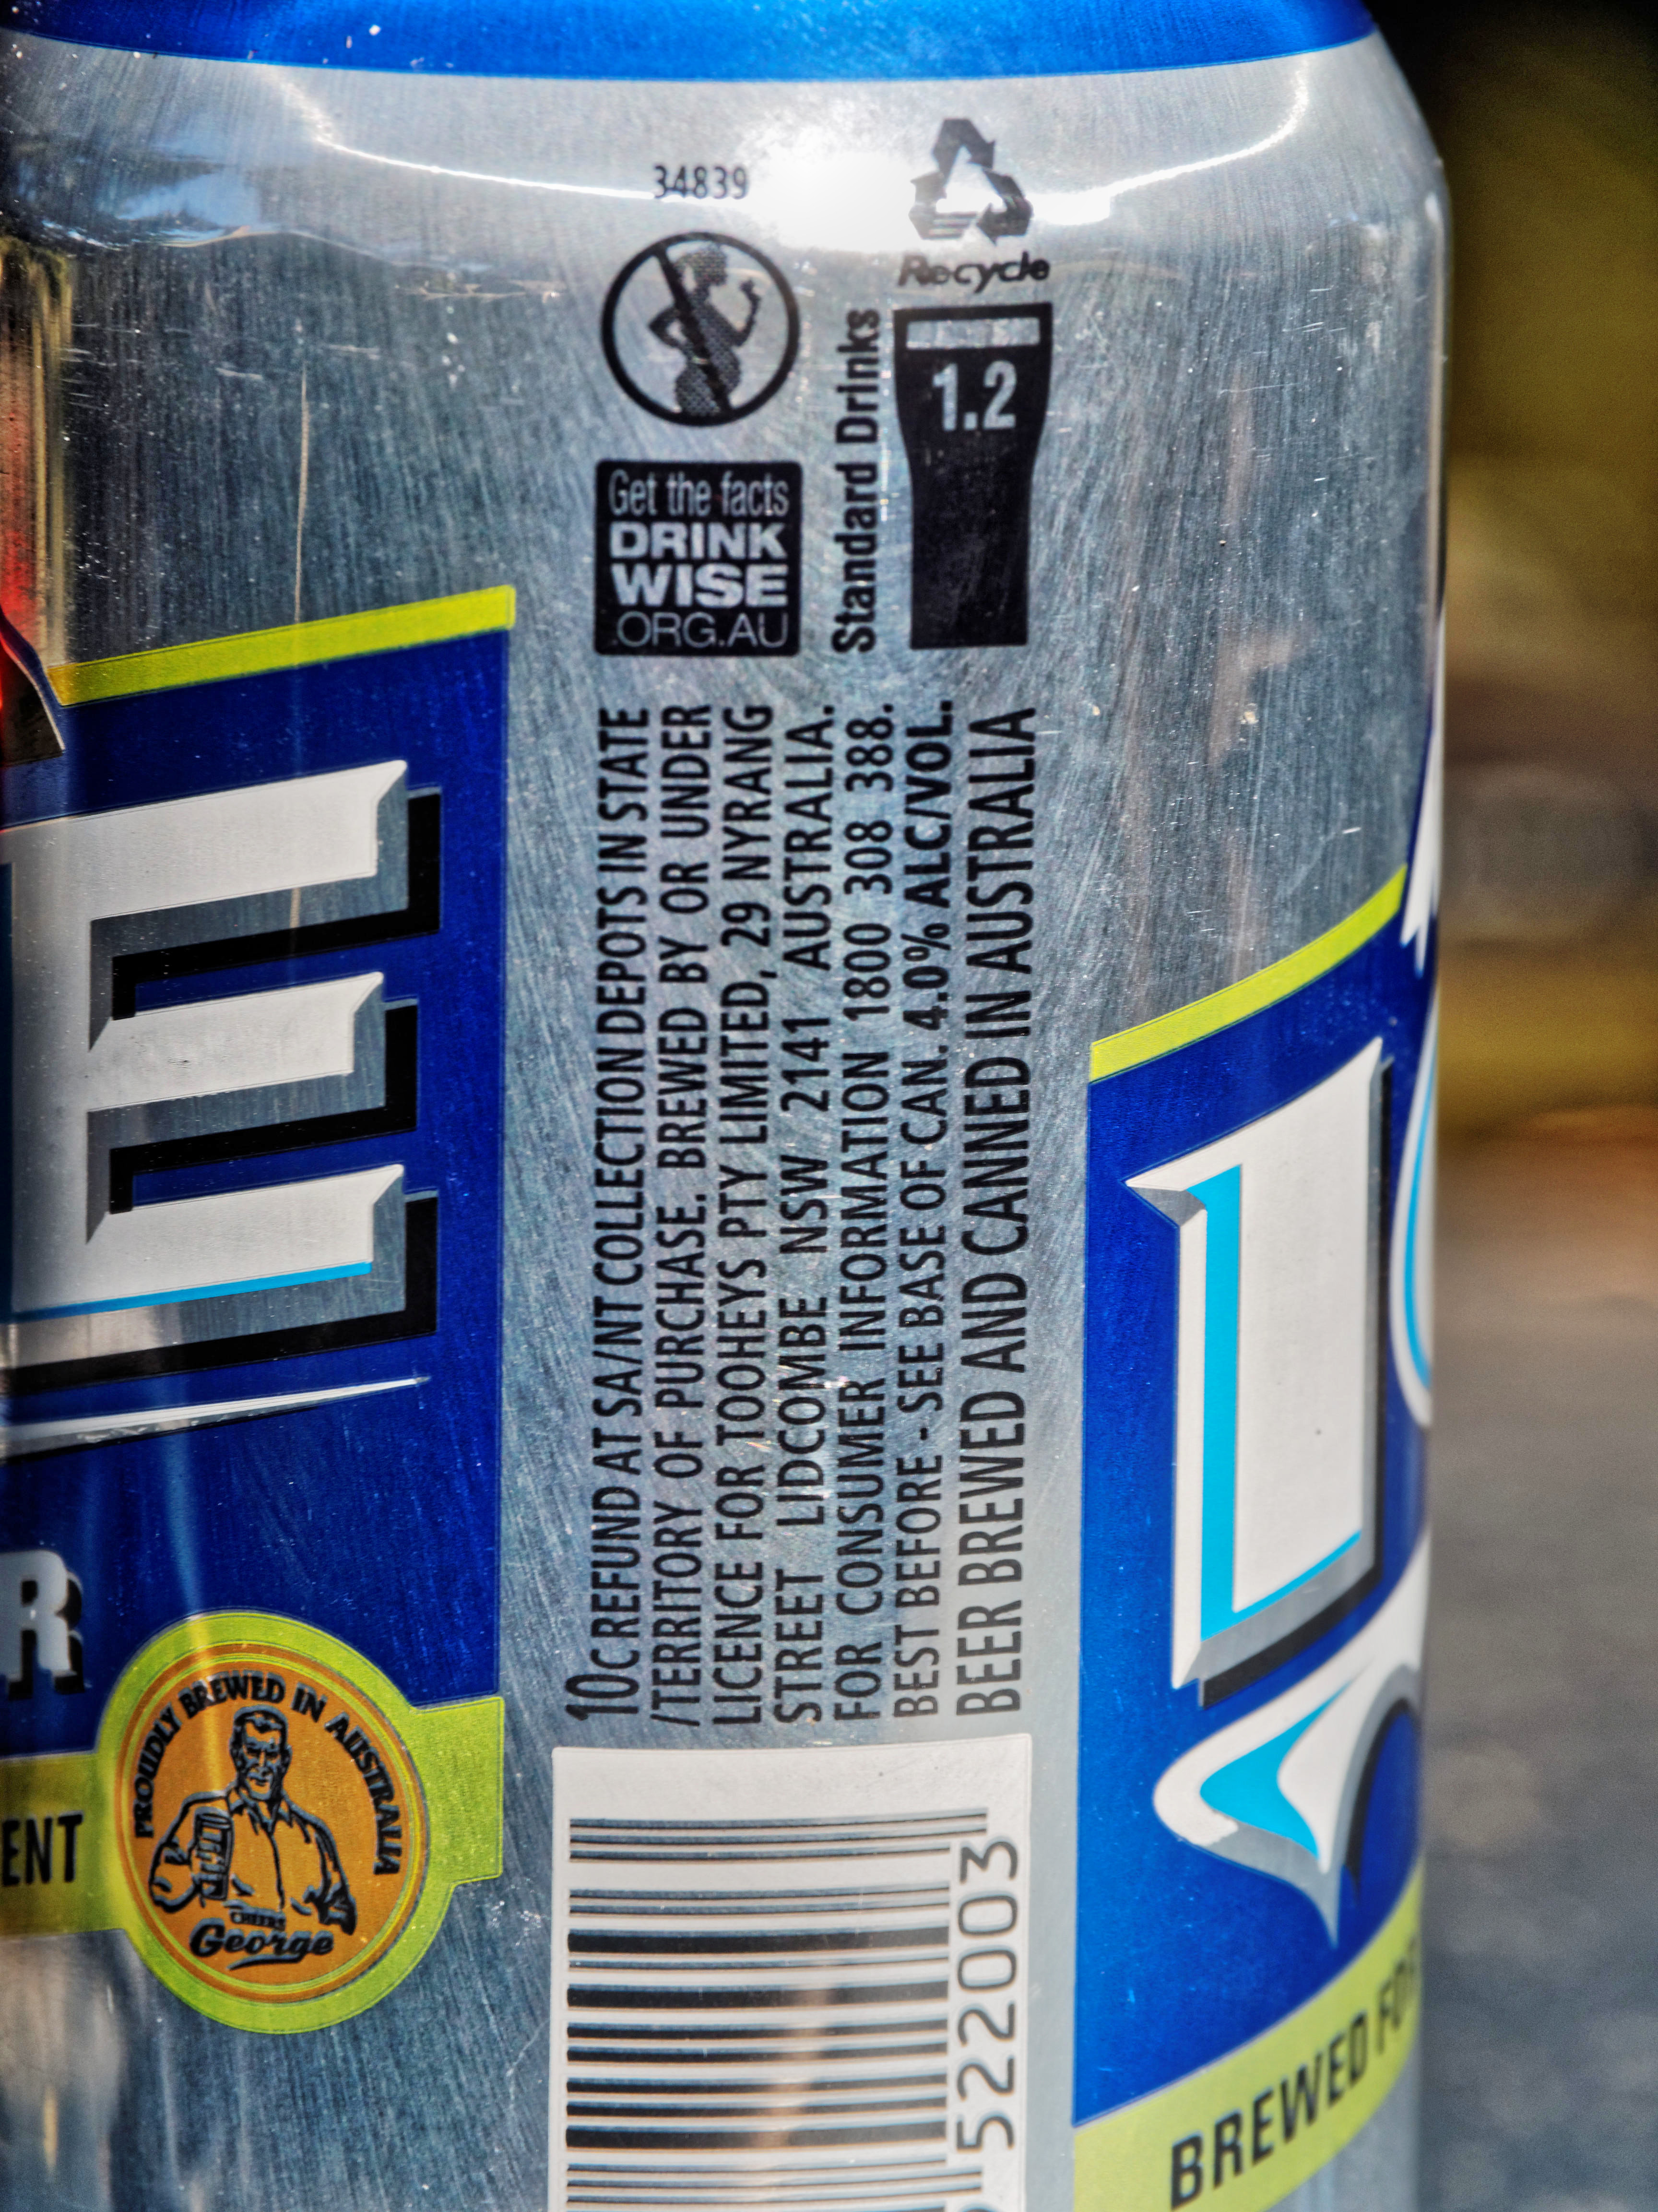 This should be Proud-beer-3.jpeg.  Is it missing?